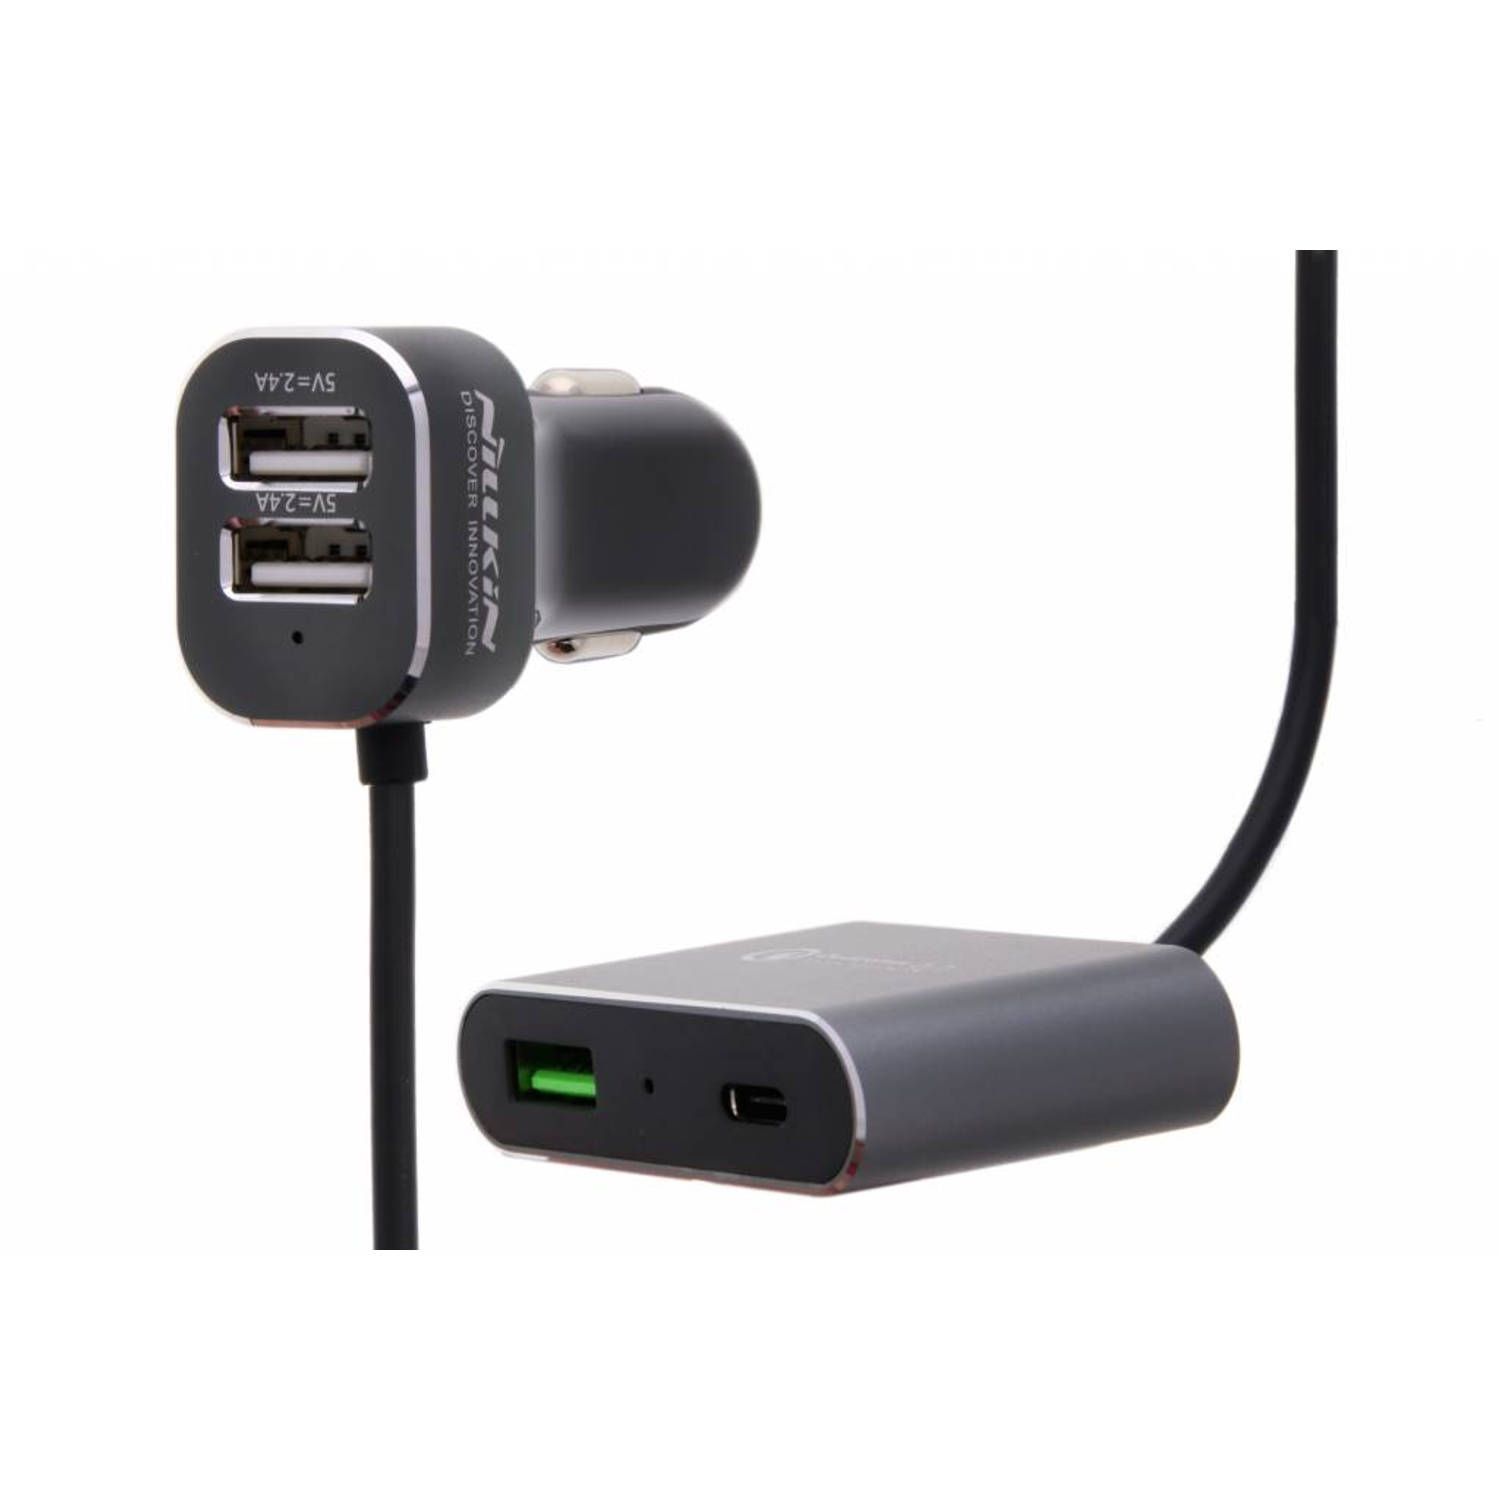 PowerShare Car Charger 7,8 ampère